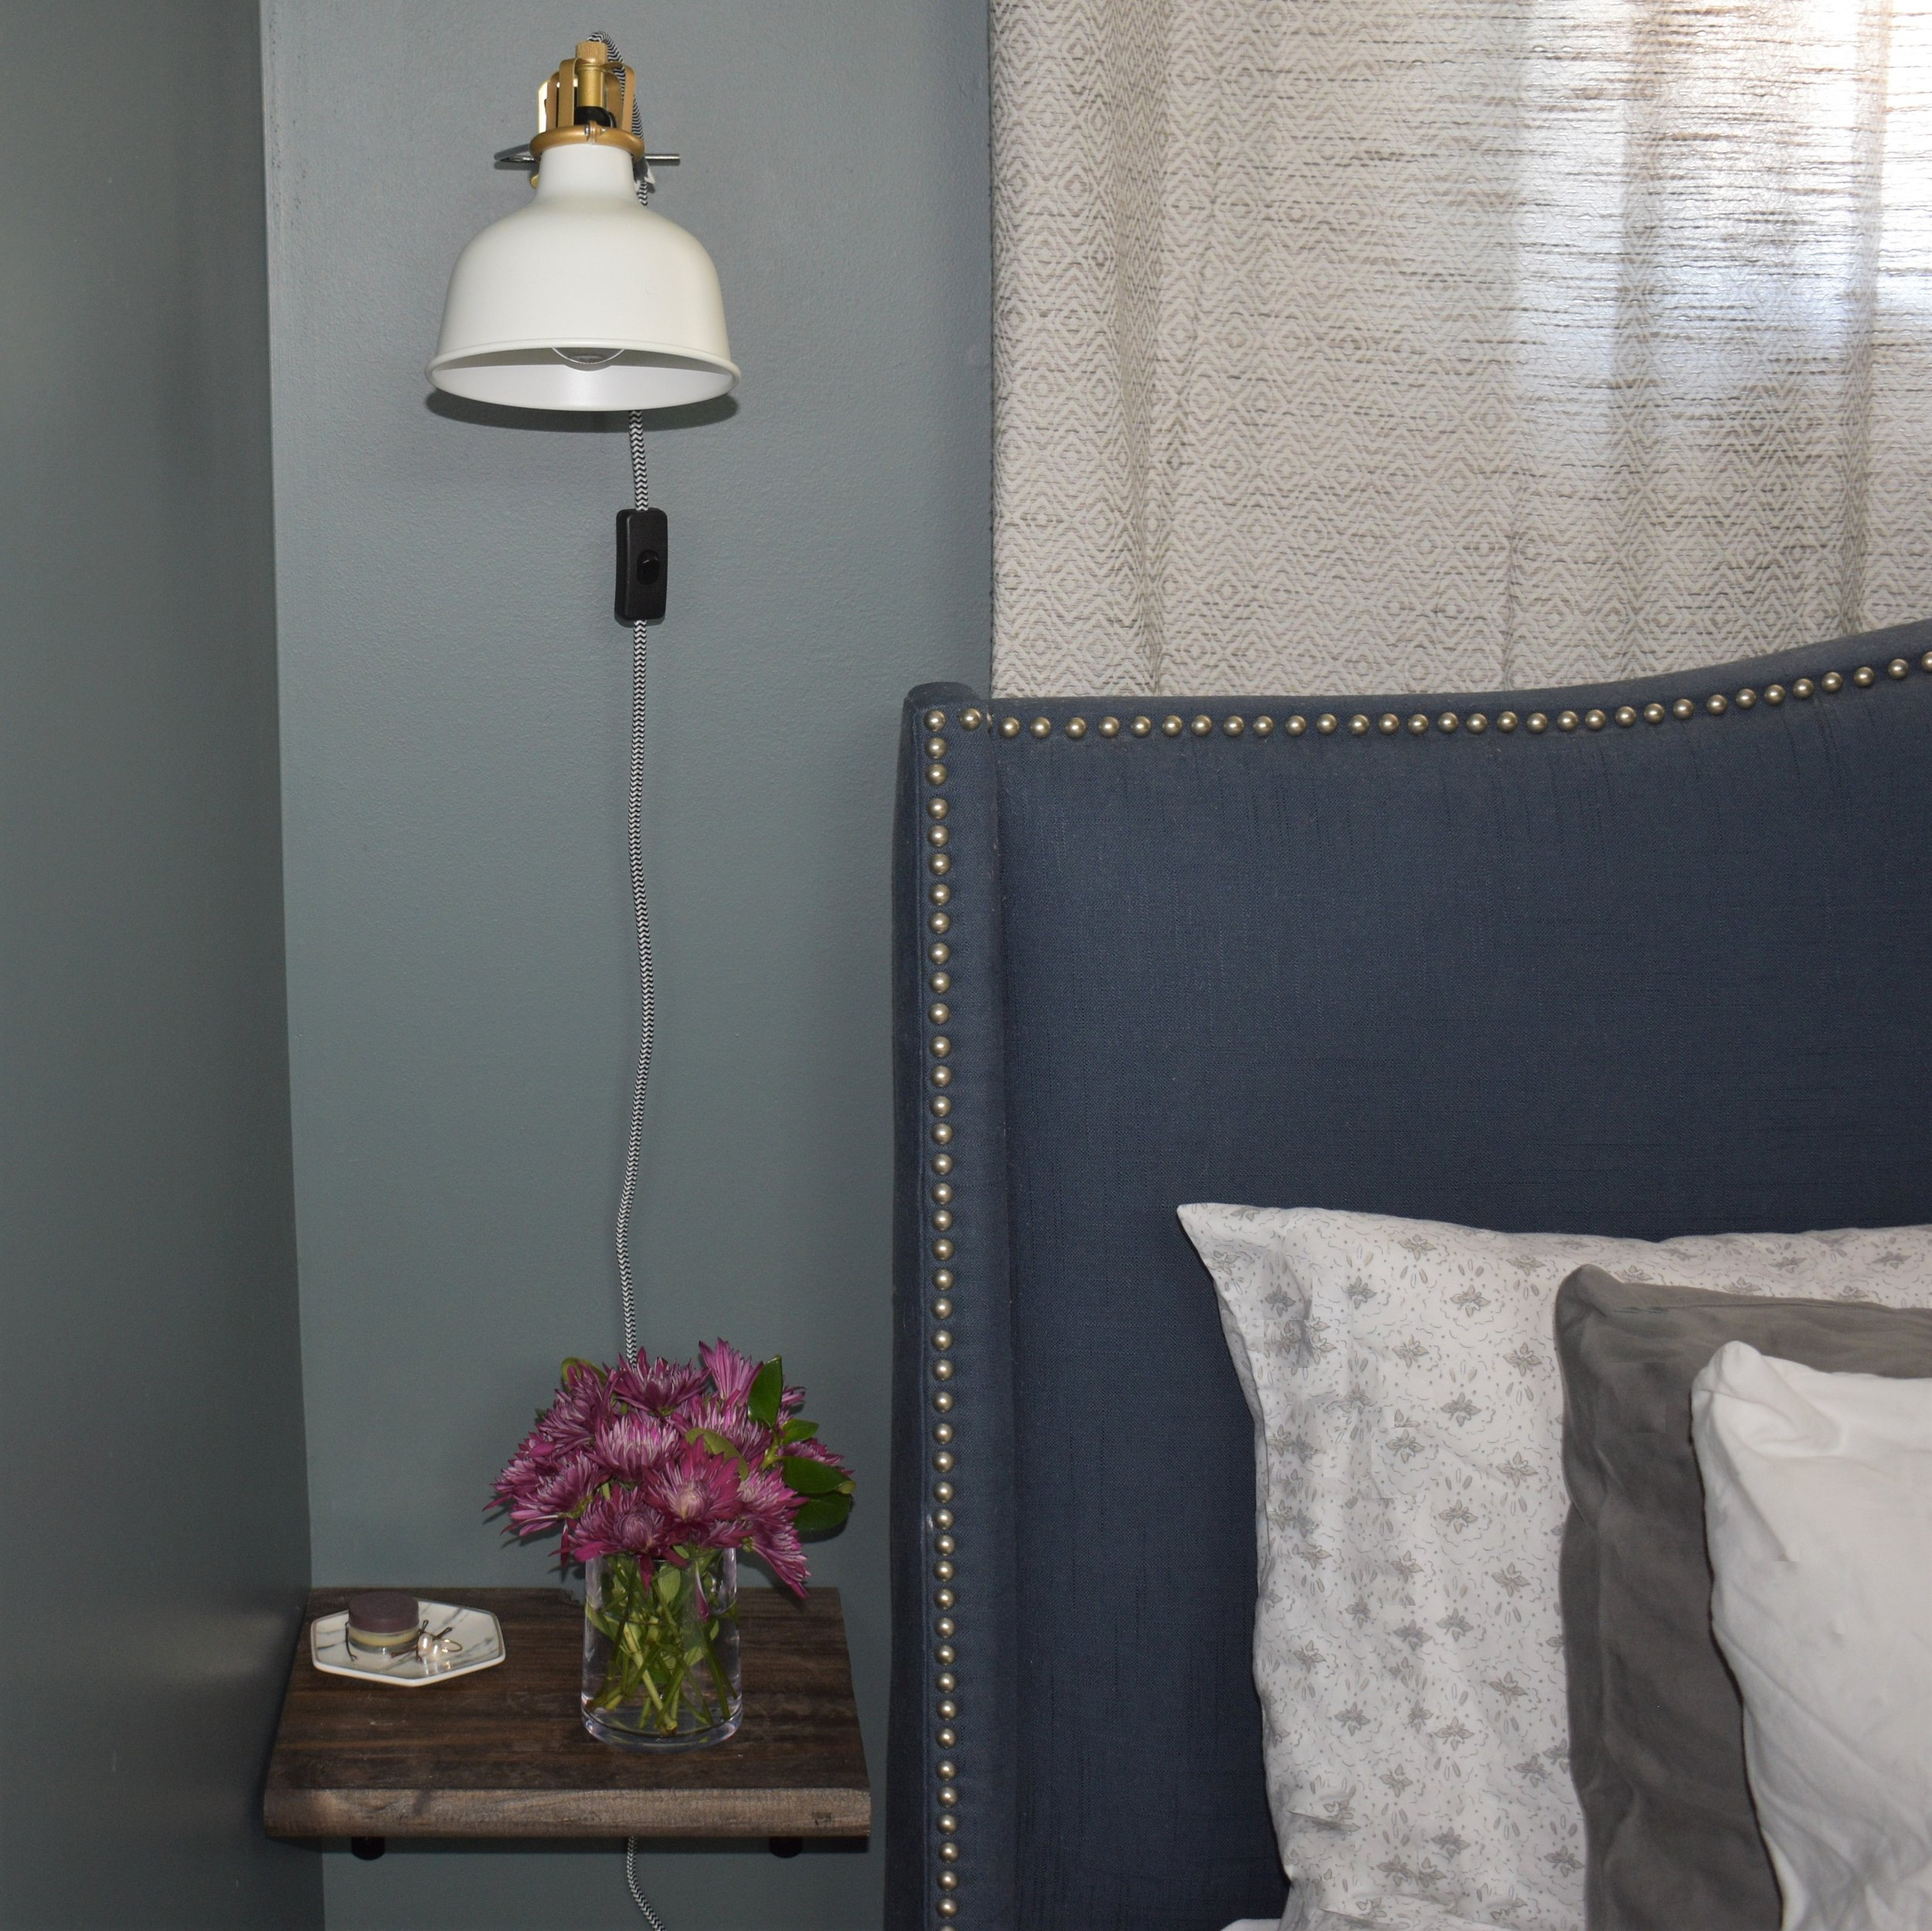 Our king bed barely fits in the space so my husband DIY-ed these floating nightstands!